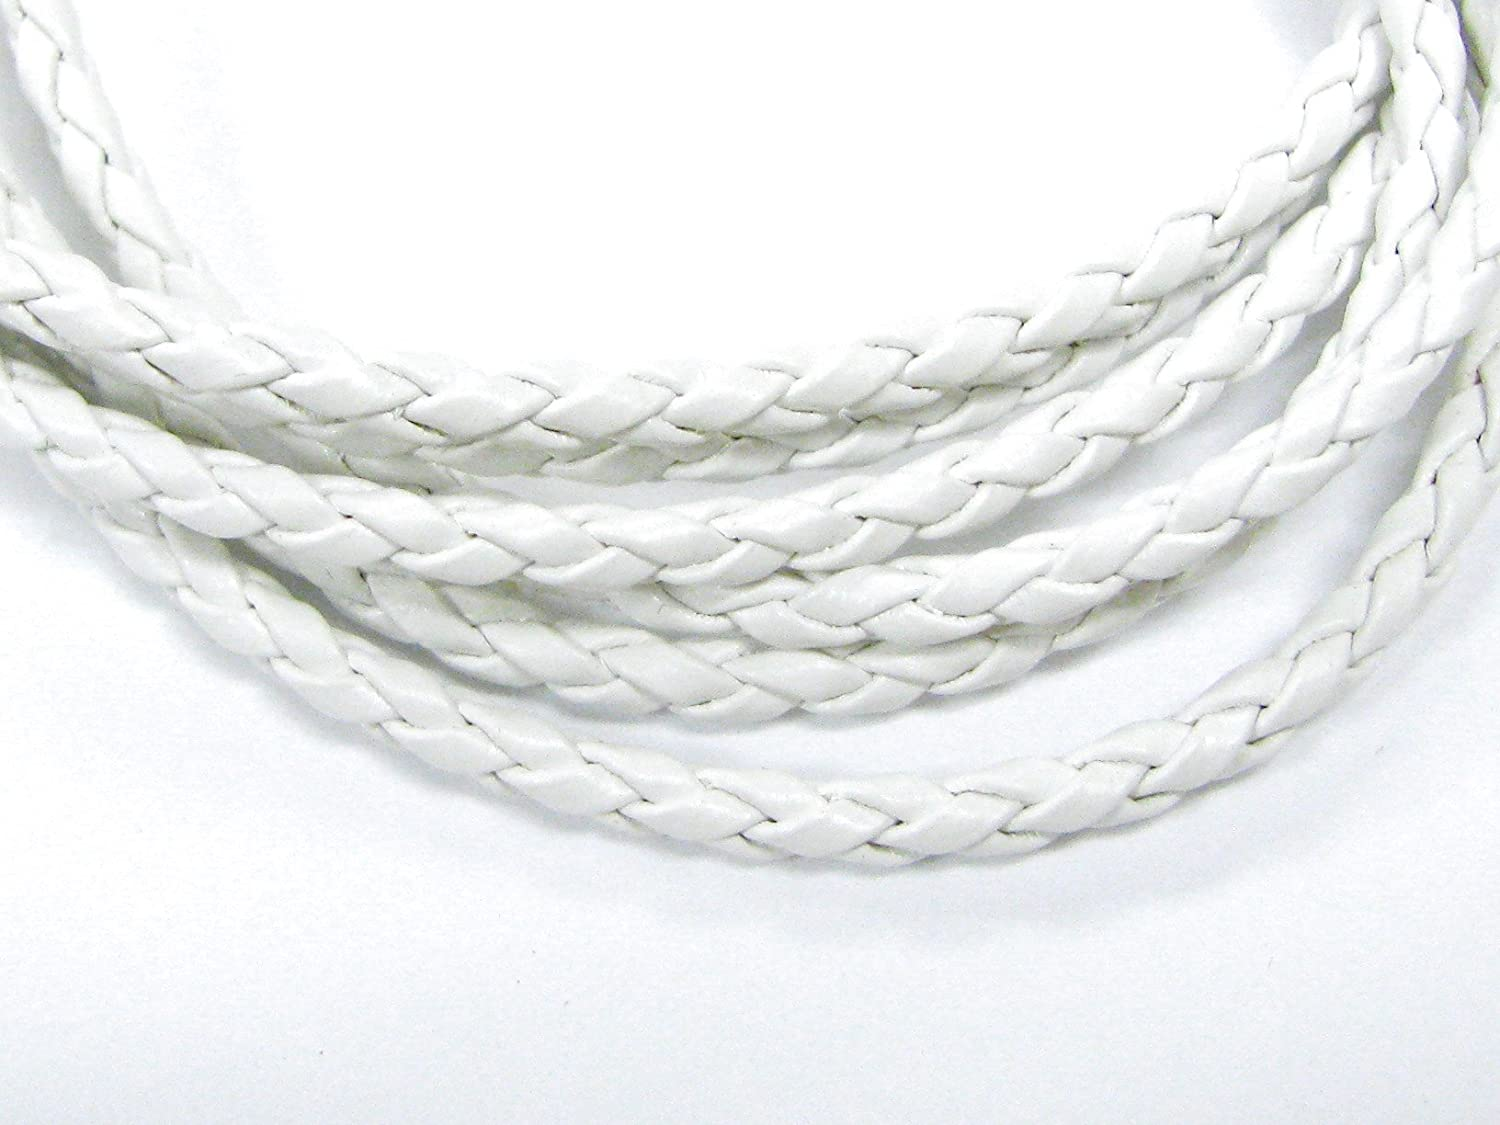 Linpeng 3 Piece Imitation Leather Braided Necklace for Jewelry Making Black